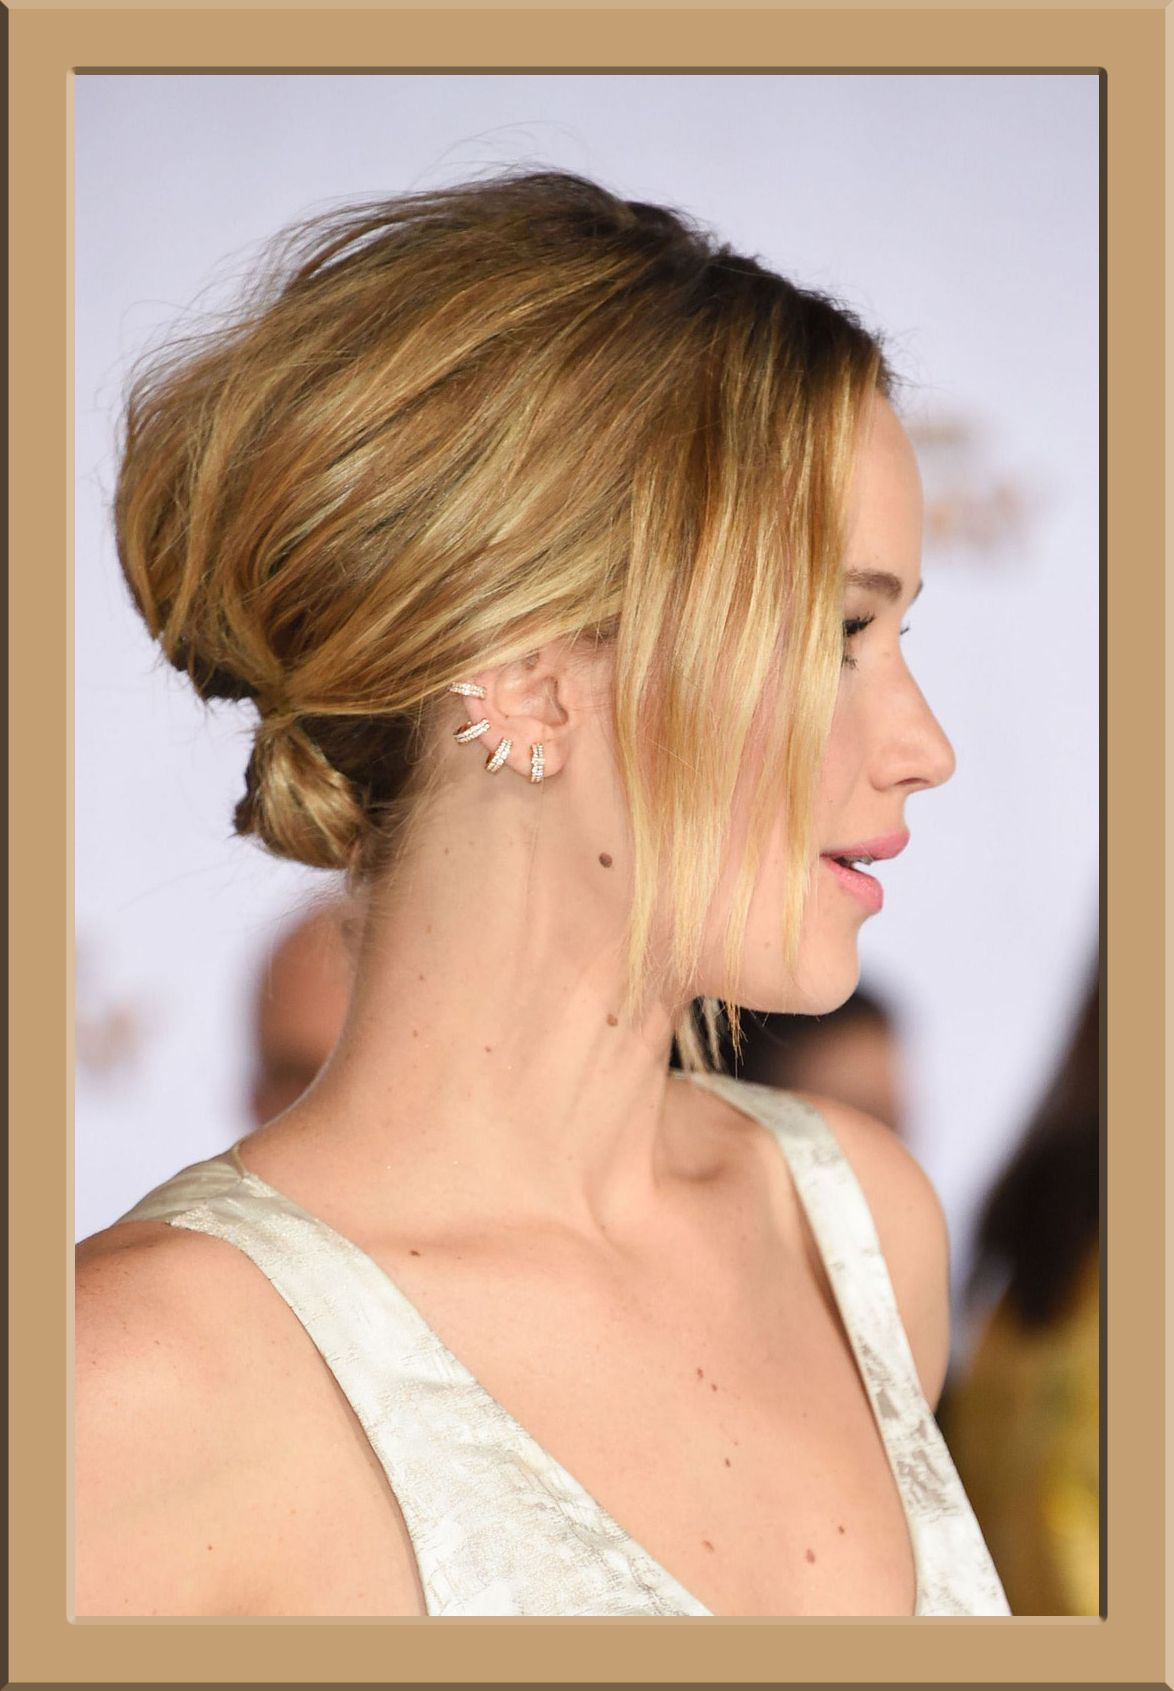 15 Tips for Hair Styles Success for 2021